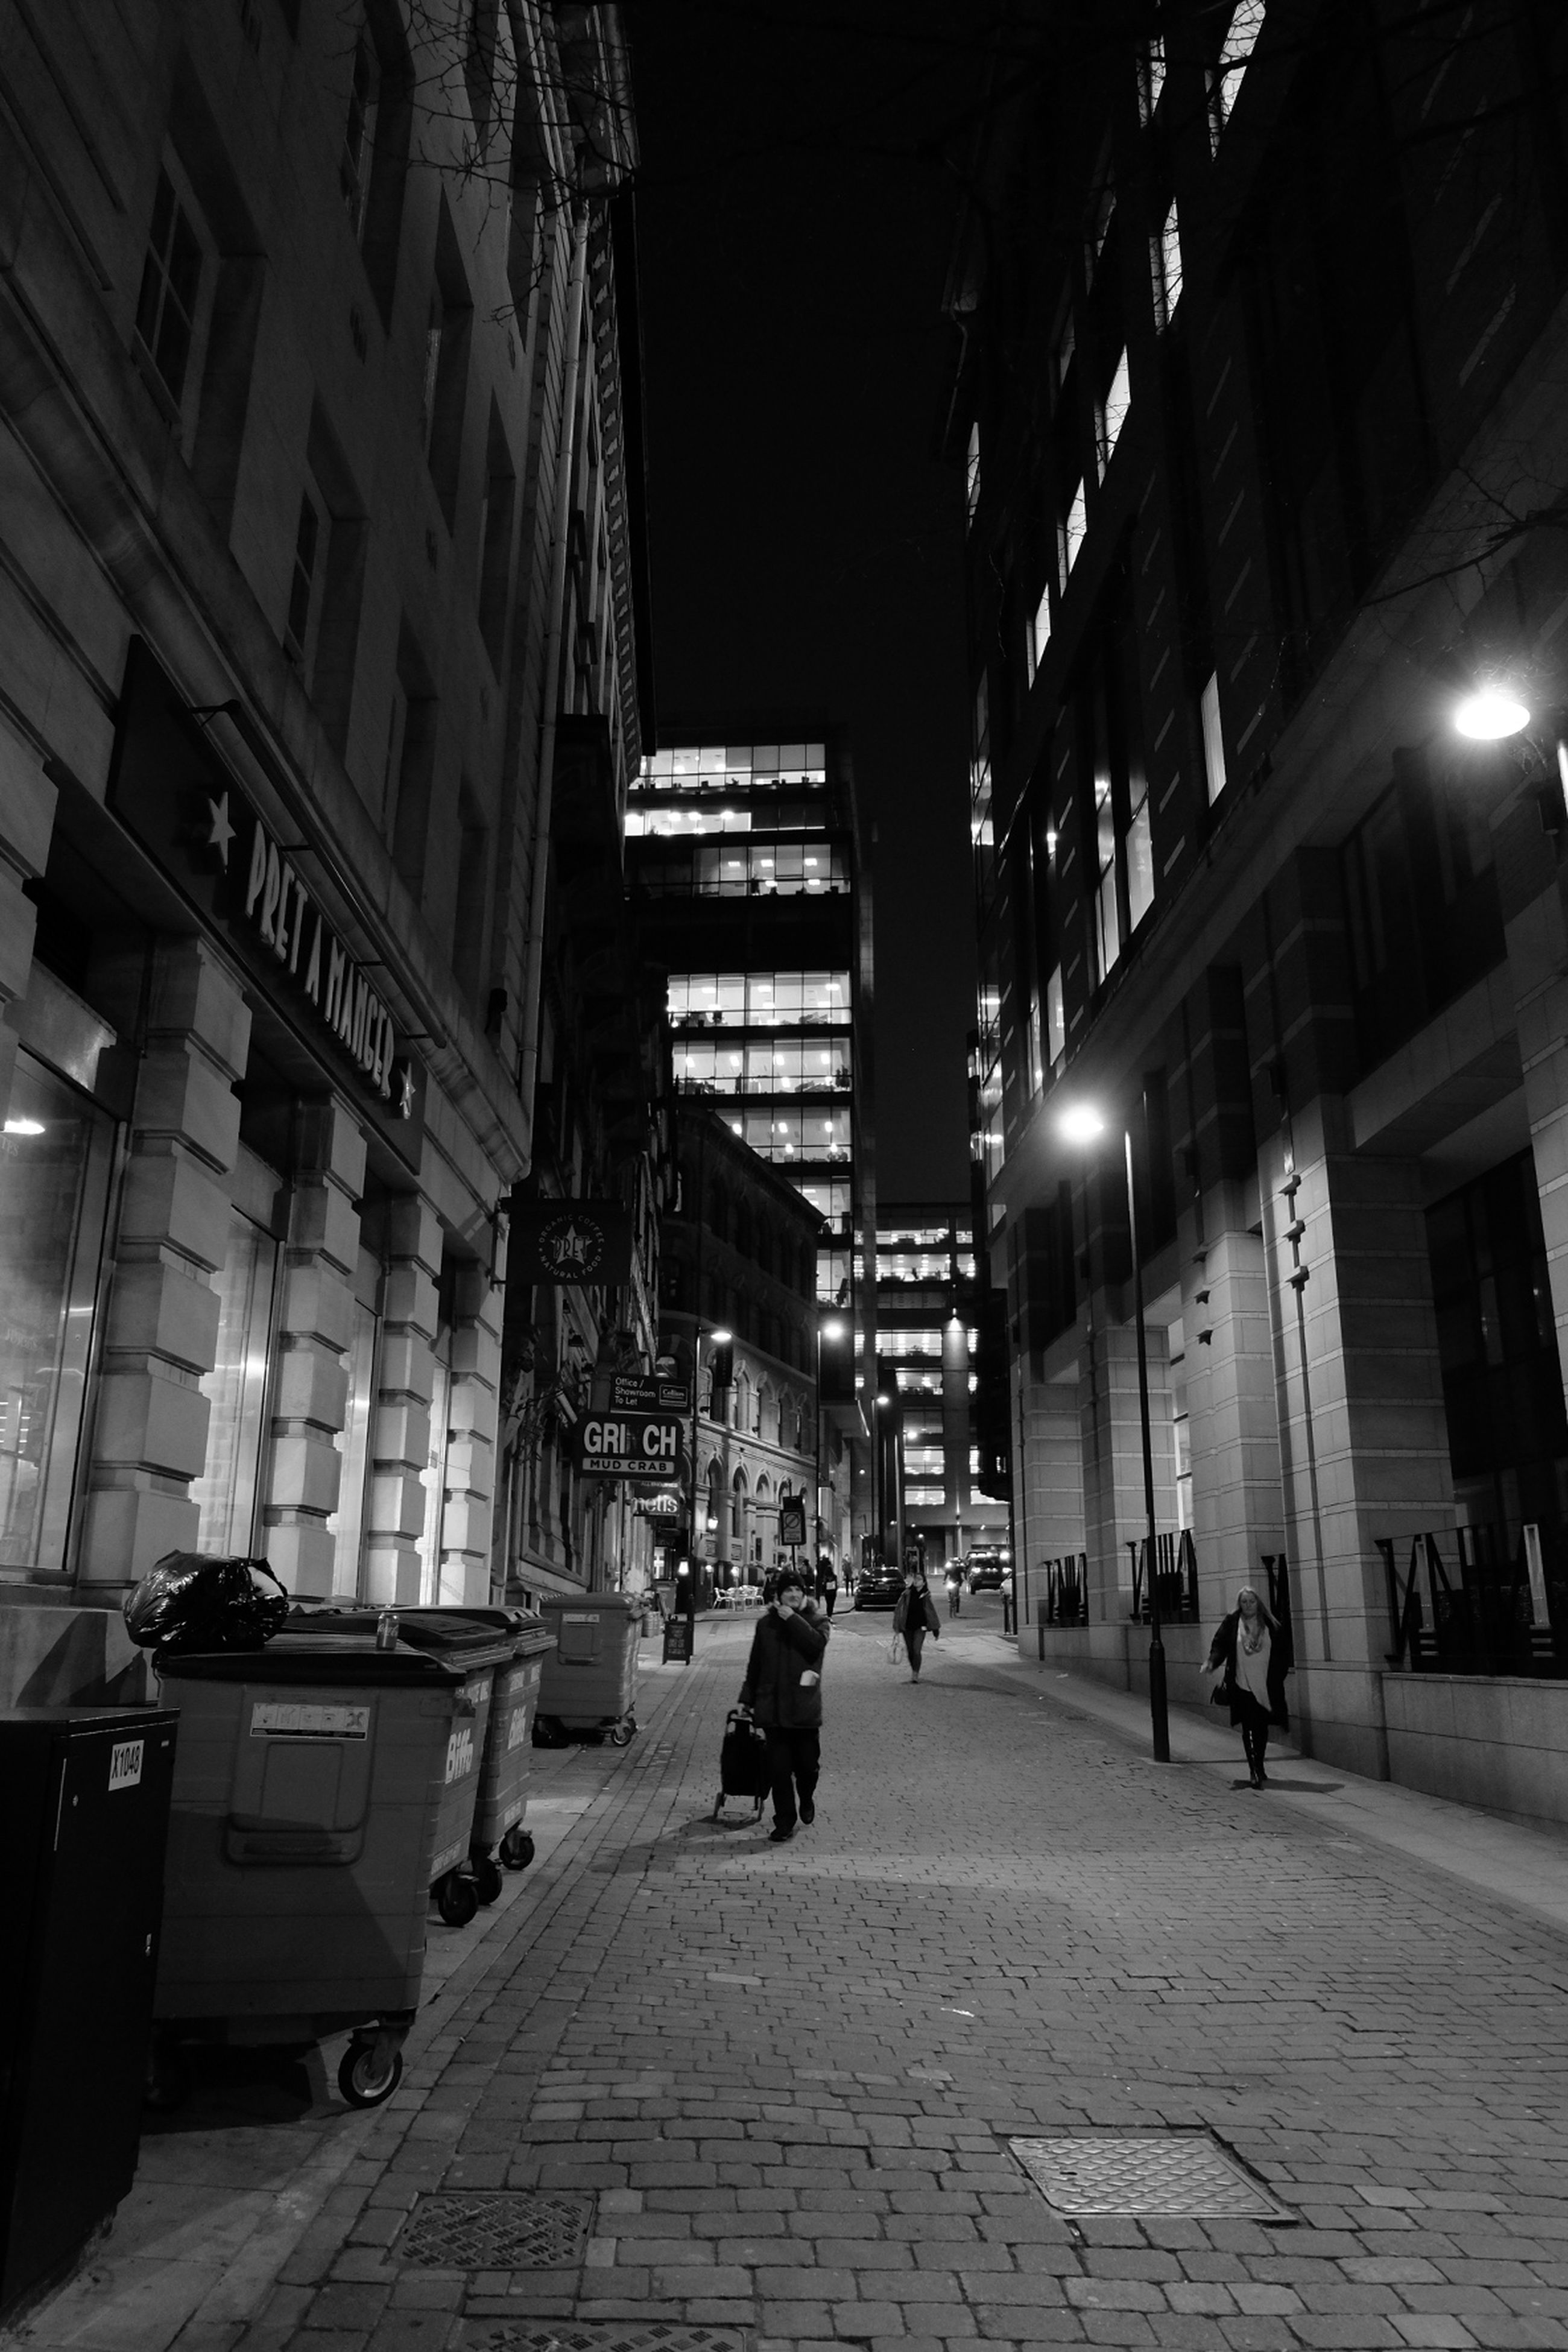 built structure, street, architecture, building exterior, city, night, illuminated, real people, walking, outdoors, men, one person, people, sky, adults only, adult, one man only